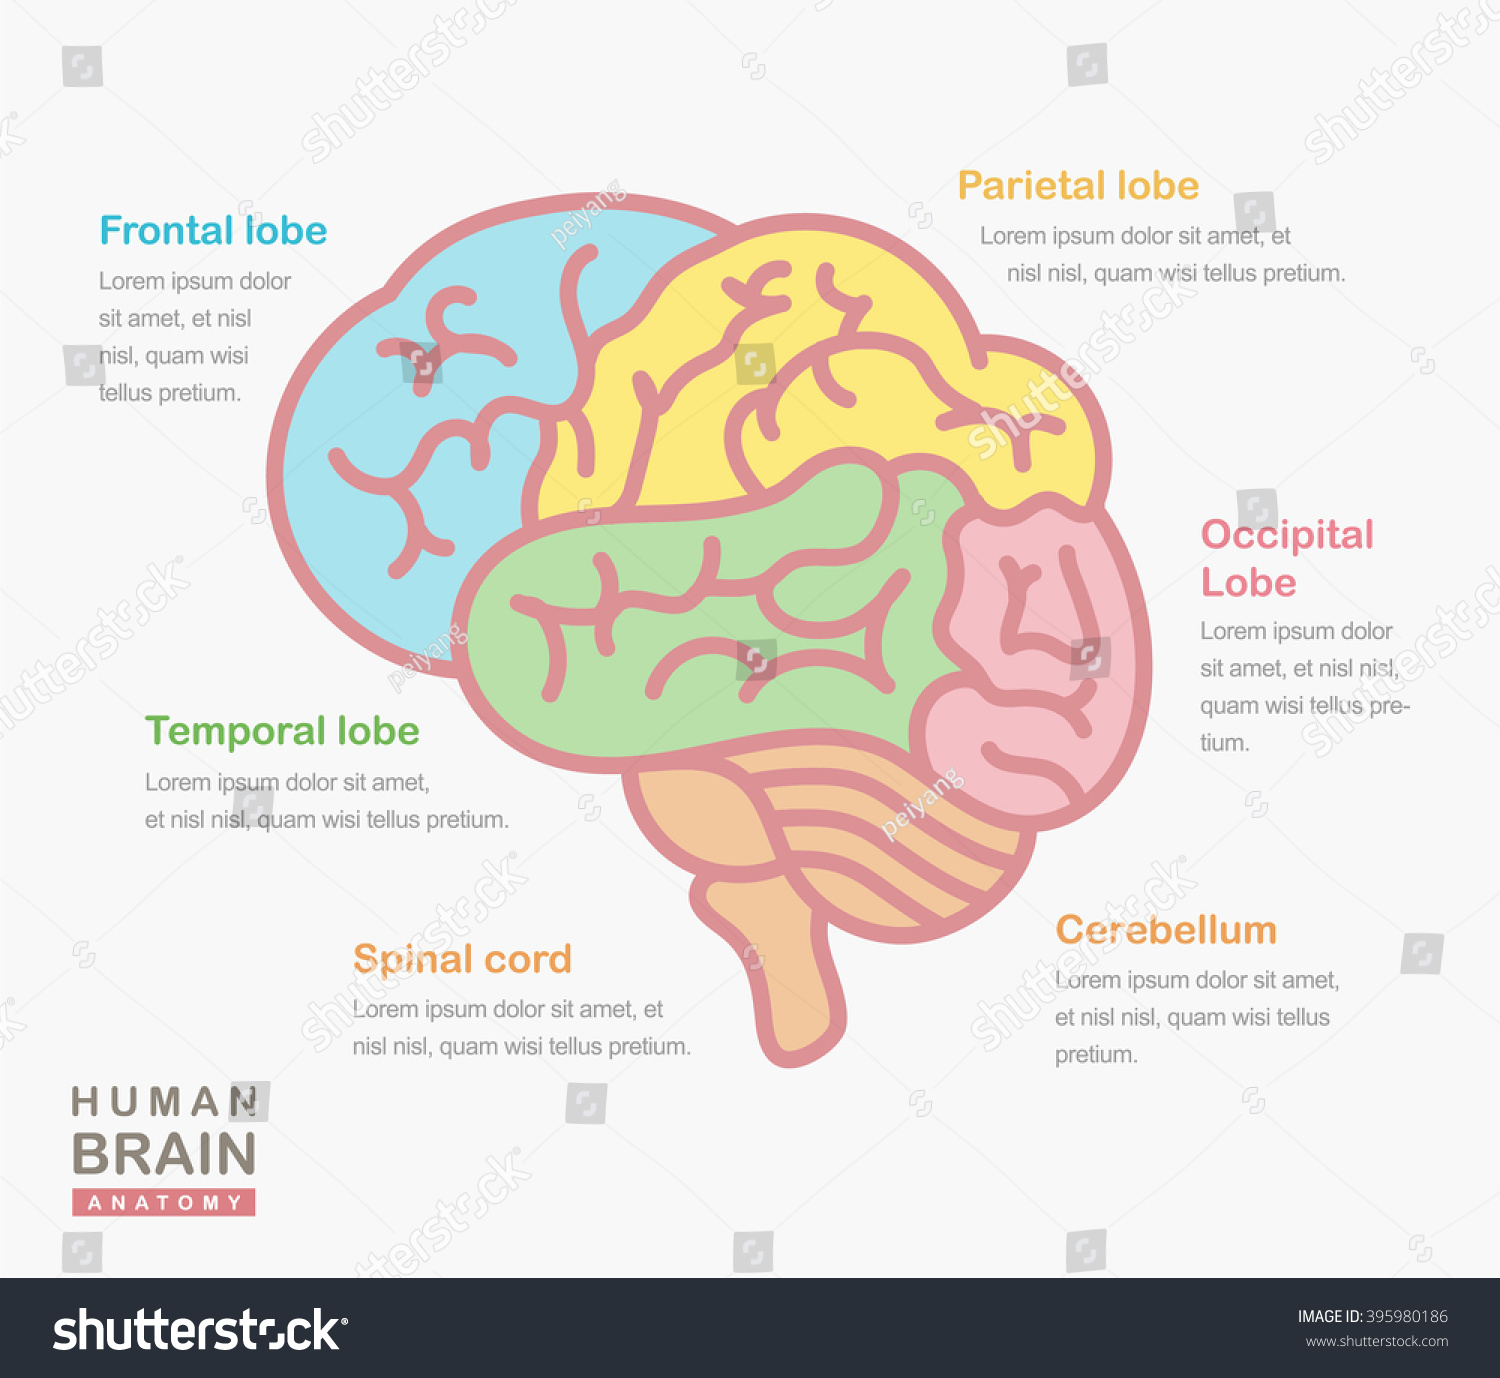 Medical Illustration Showing Structure Human Brain Stock Vector